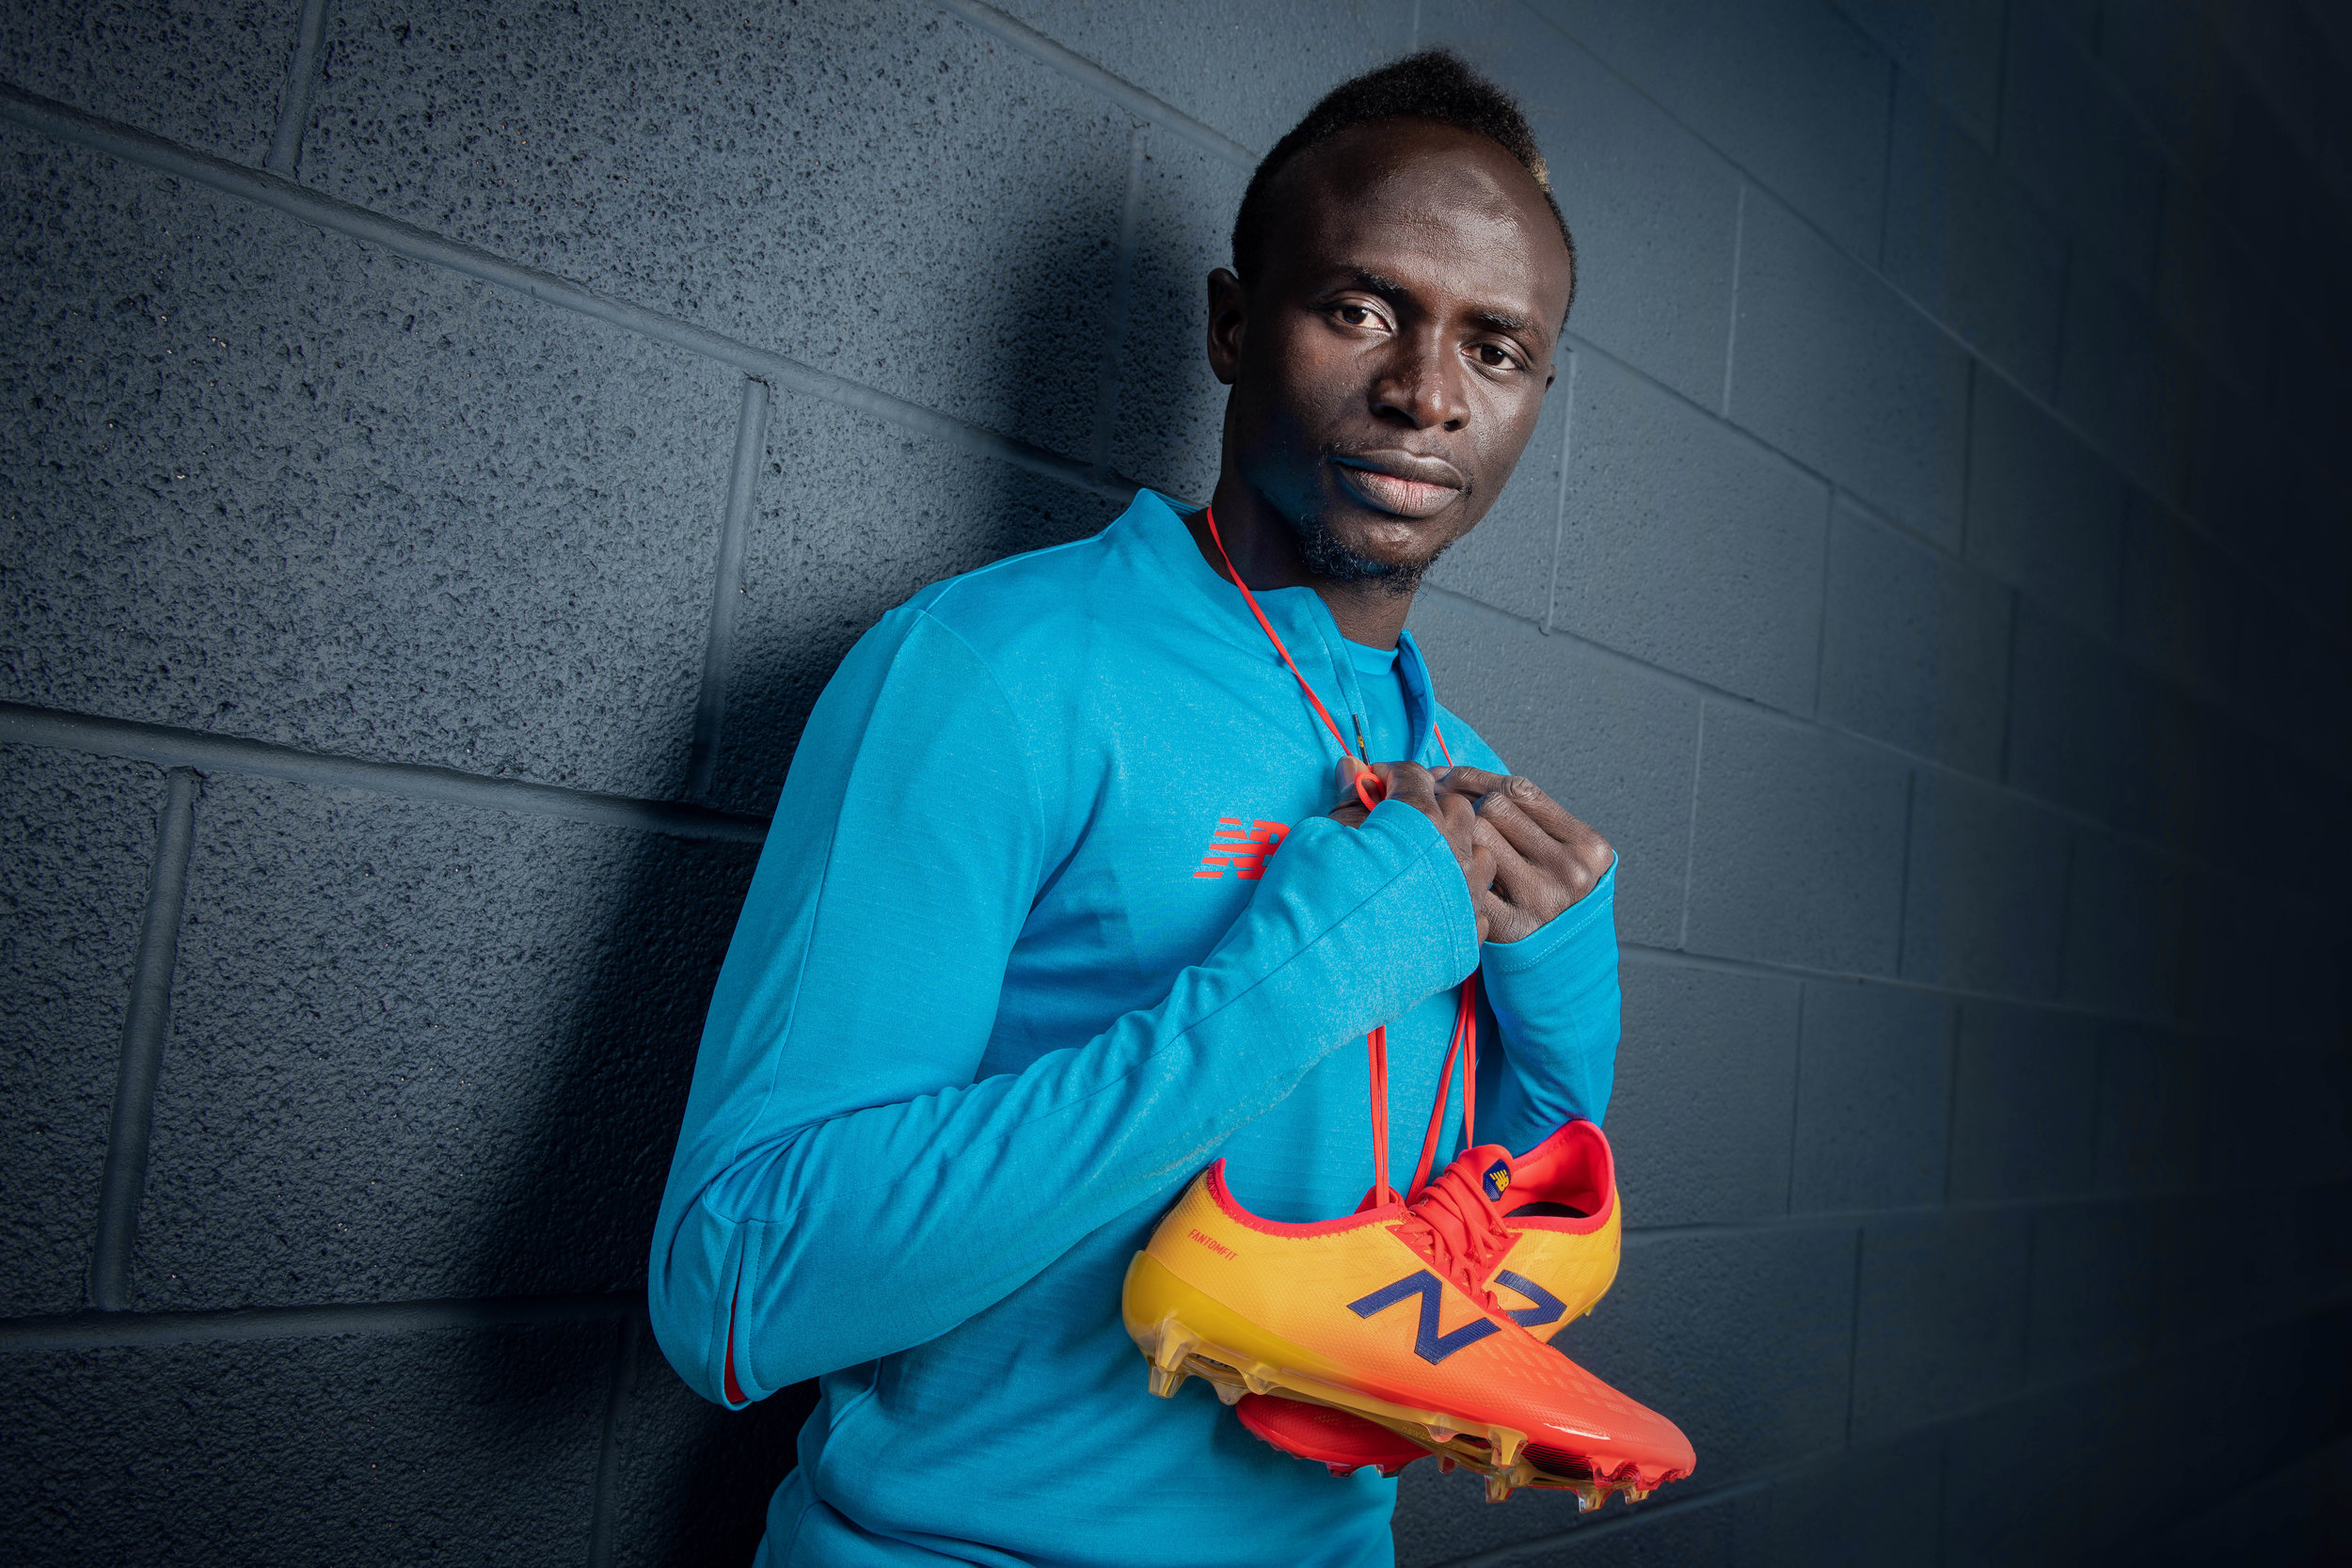 SADIO MANE PORTRAIT NEW BALANCE FURON PHOTO CREDIT PAUL COOPER/PCOOPERPHOTO.COM